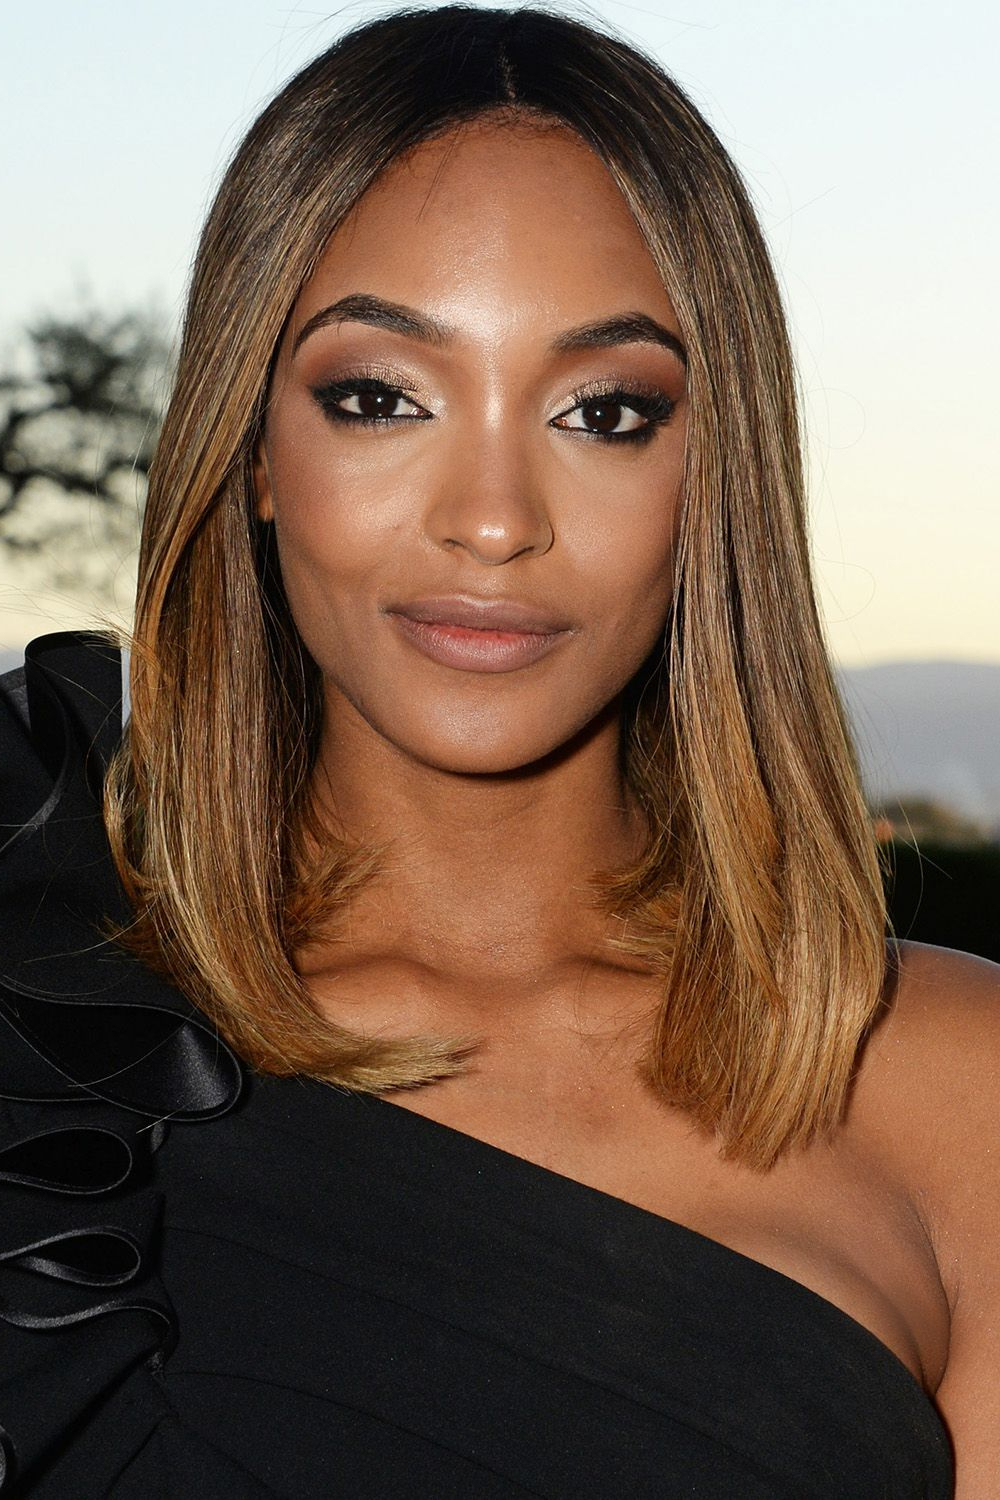 Well Liked Soft Medium Hairstyles For Black Women Throughout 40 Best Medium Hairstyles – Celebrities With Shoulder Length Haircuts (View 19 of 20)